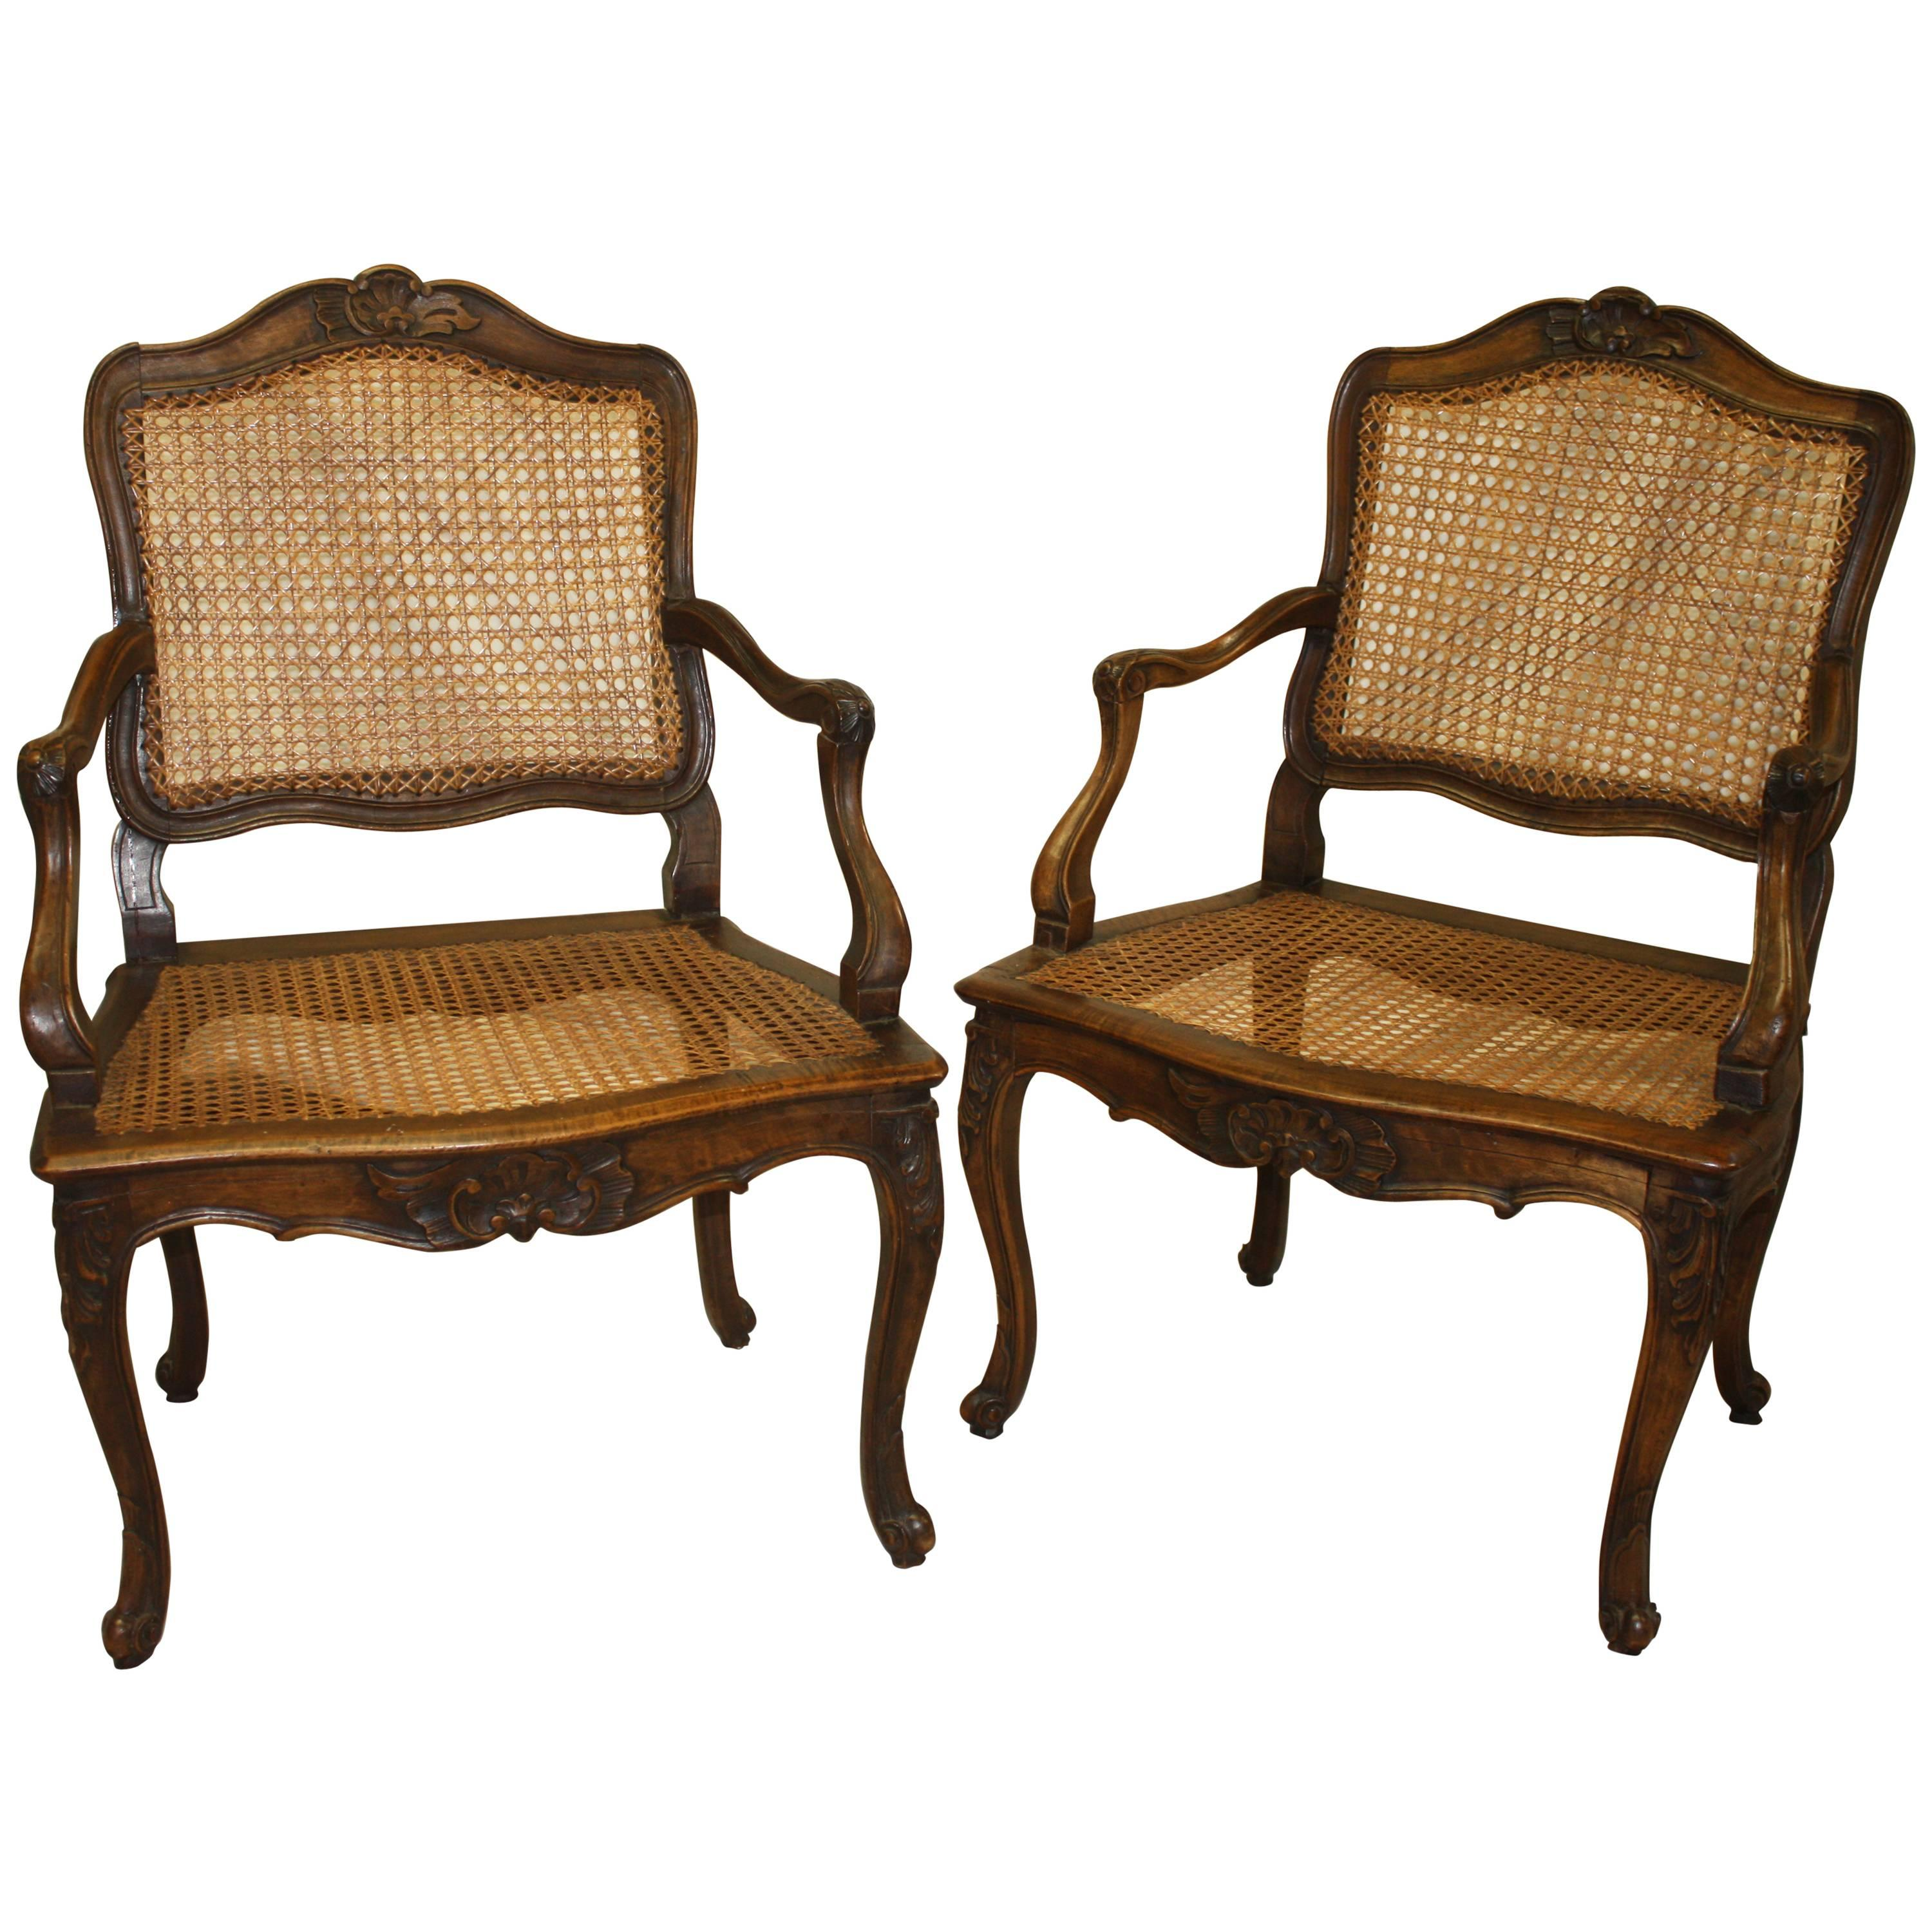 Pair of 18th Century Caned Chairs